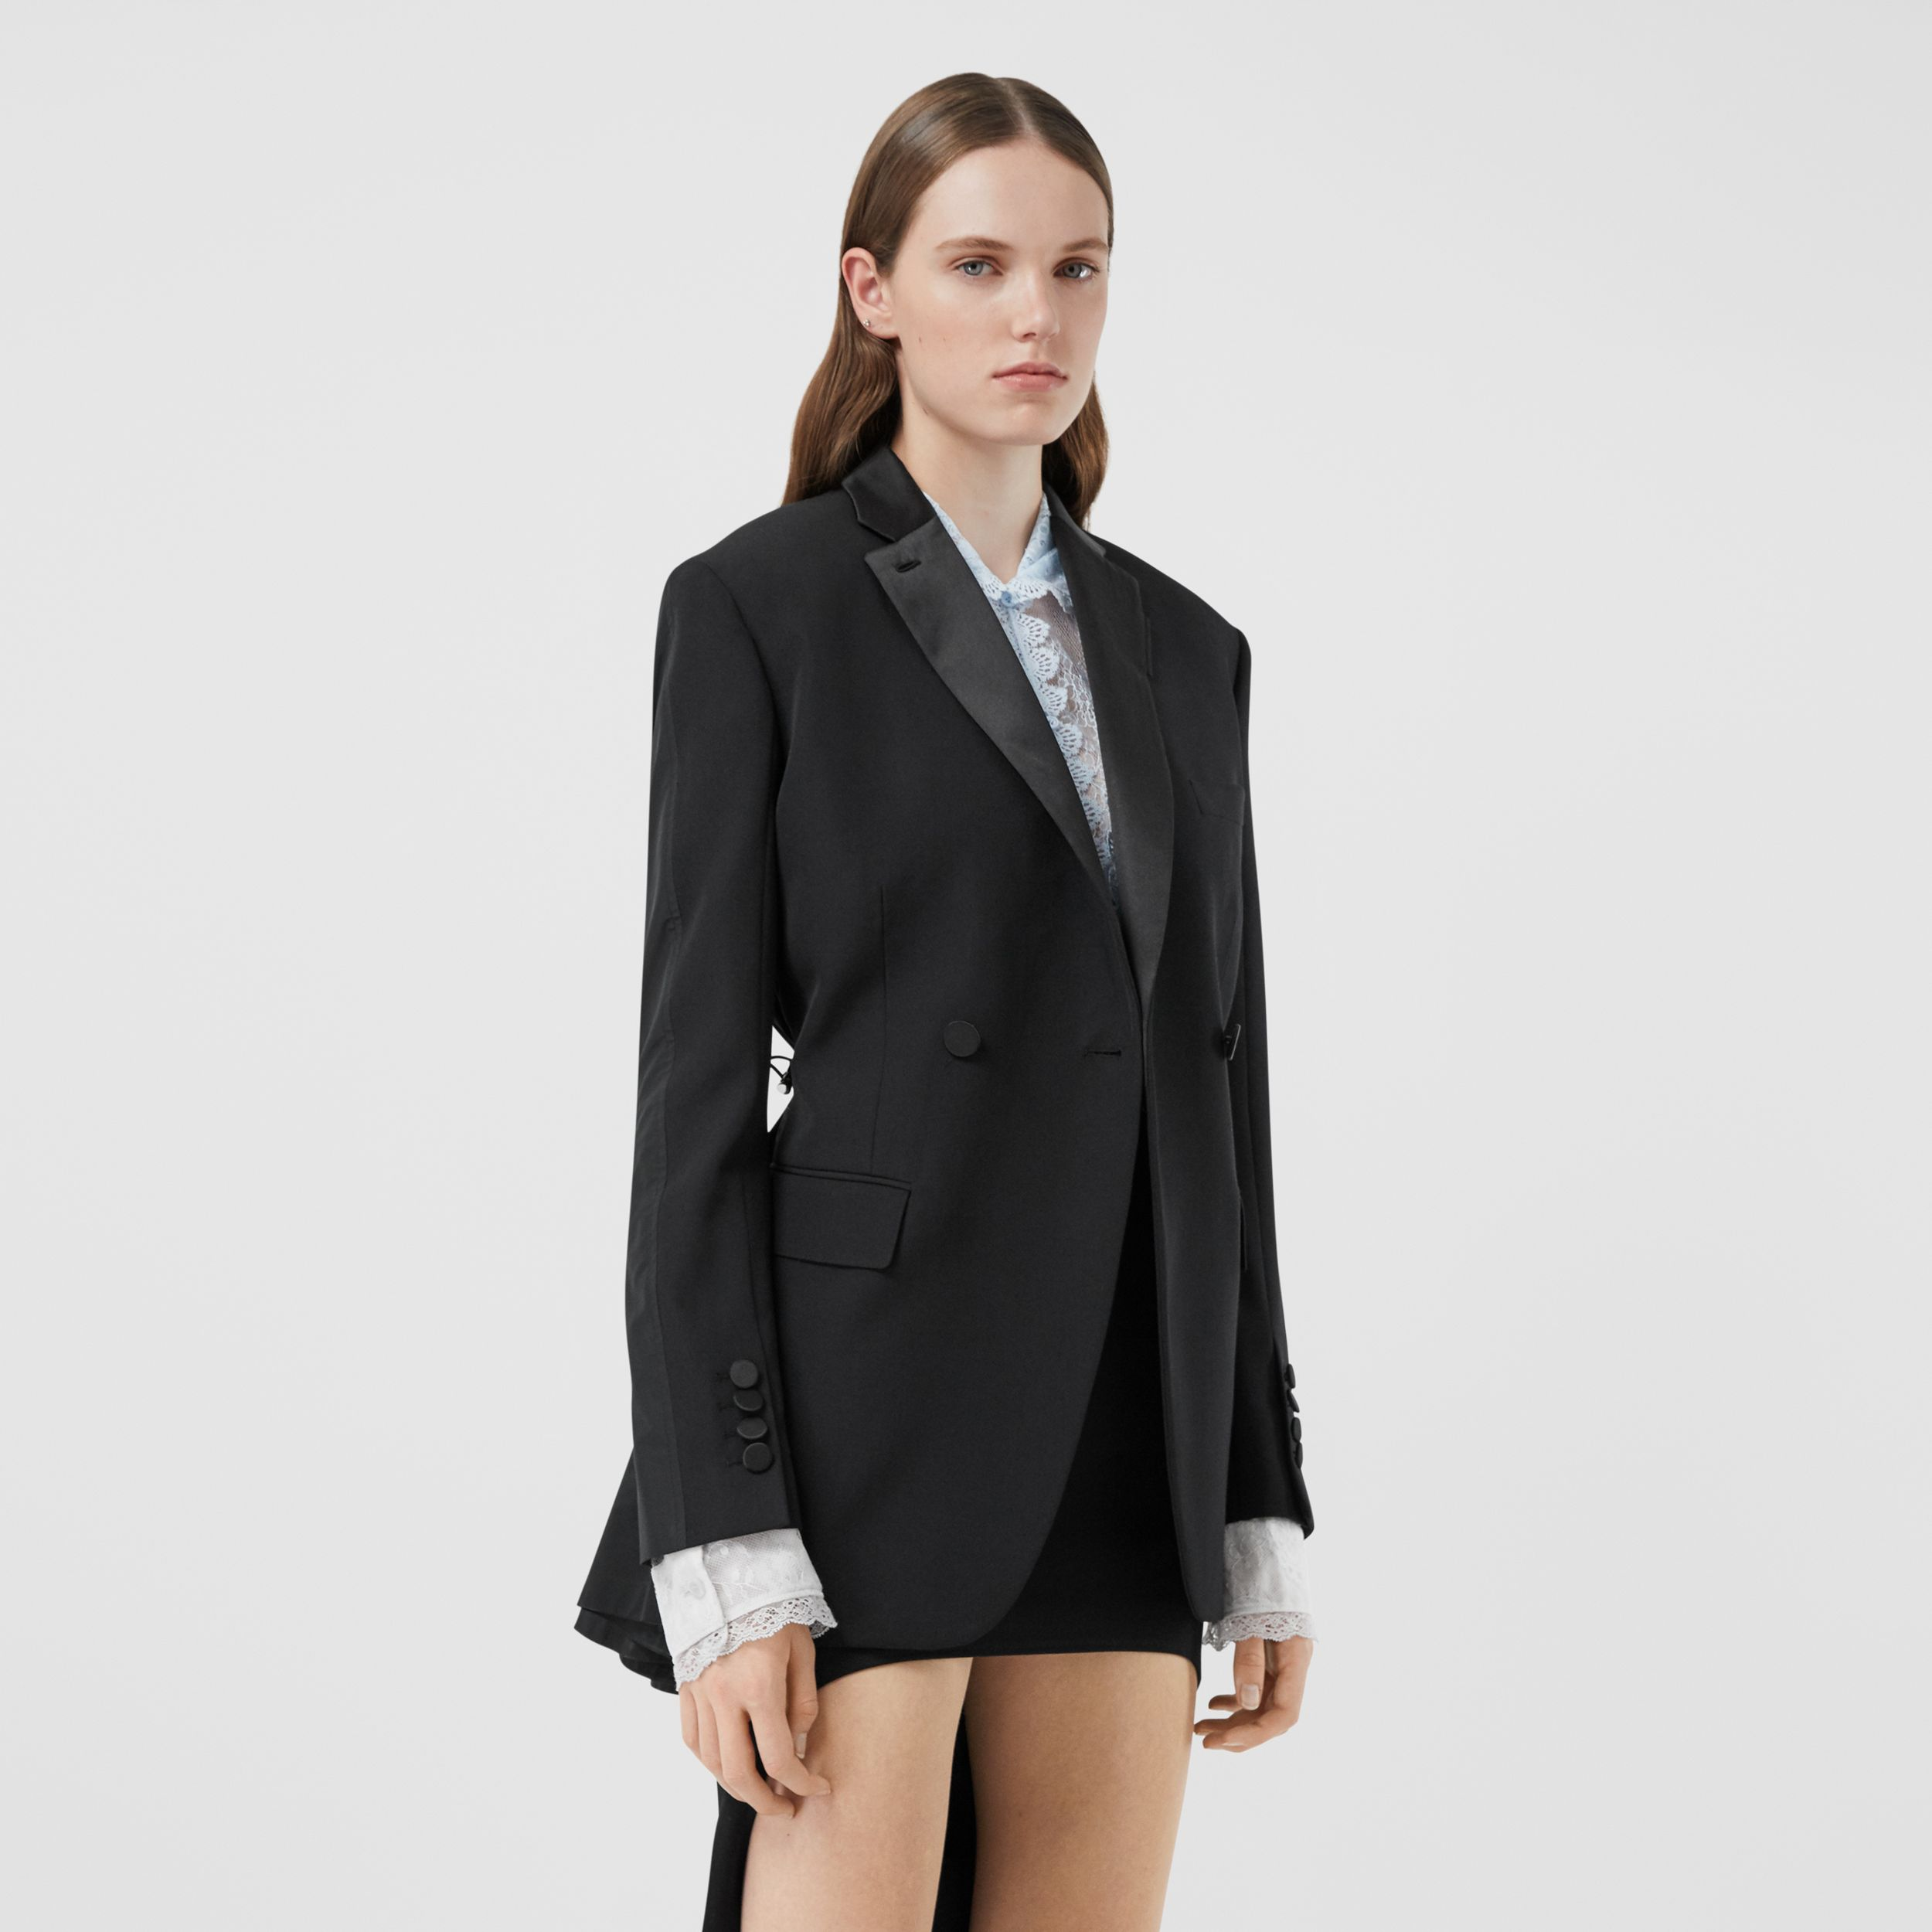 Cut-out Back Wool and Taffeta Tuxedo Jacket in Black - Women | Burberry - 1